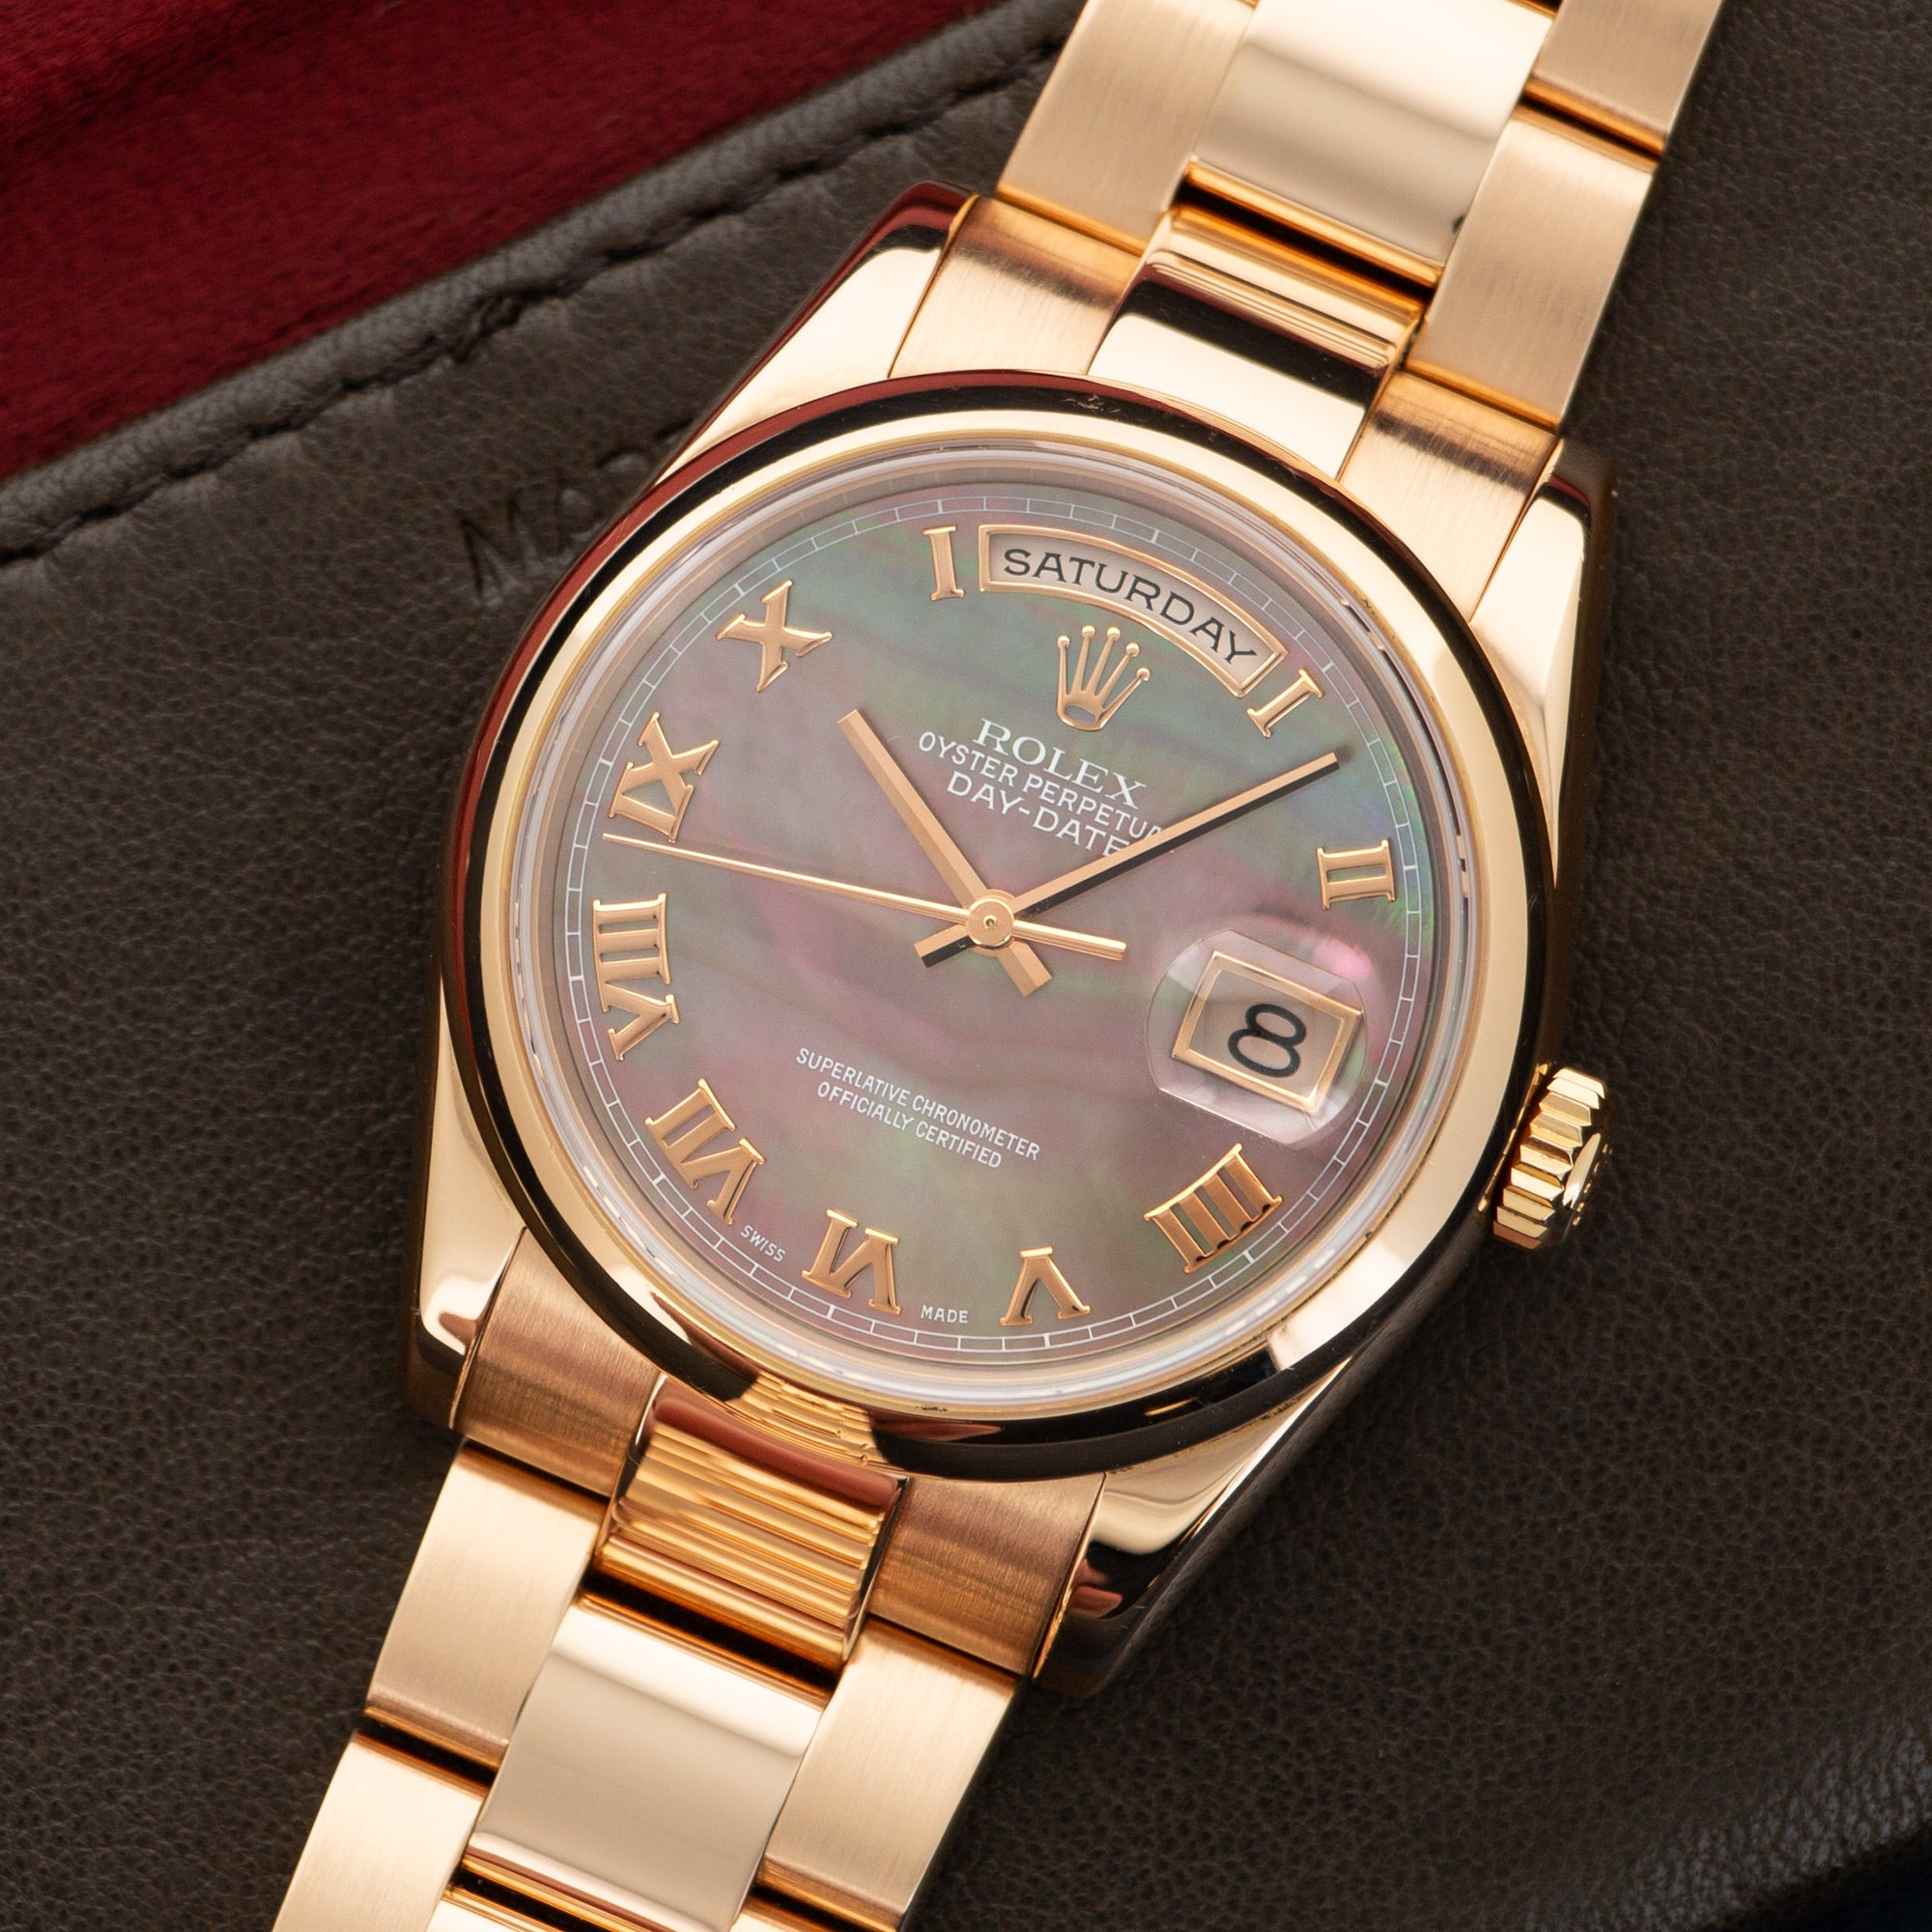 Rolex Day-Date 118205NR 18k RG  Excellent Unisex 18k RG Mother of Pearl with Roman Numerals 36mm Automatic Early 2000s Rose Gold Bracelet Leather Travel Case